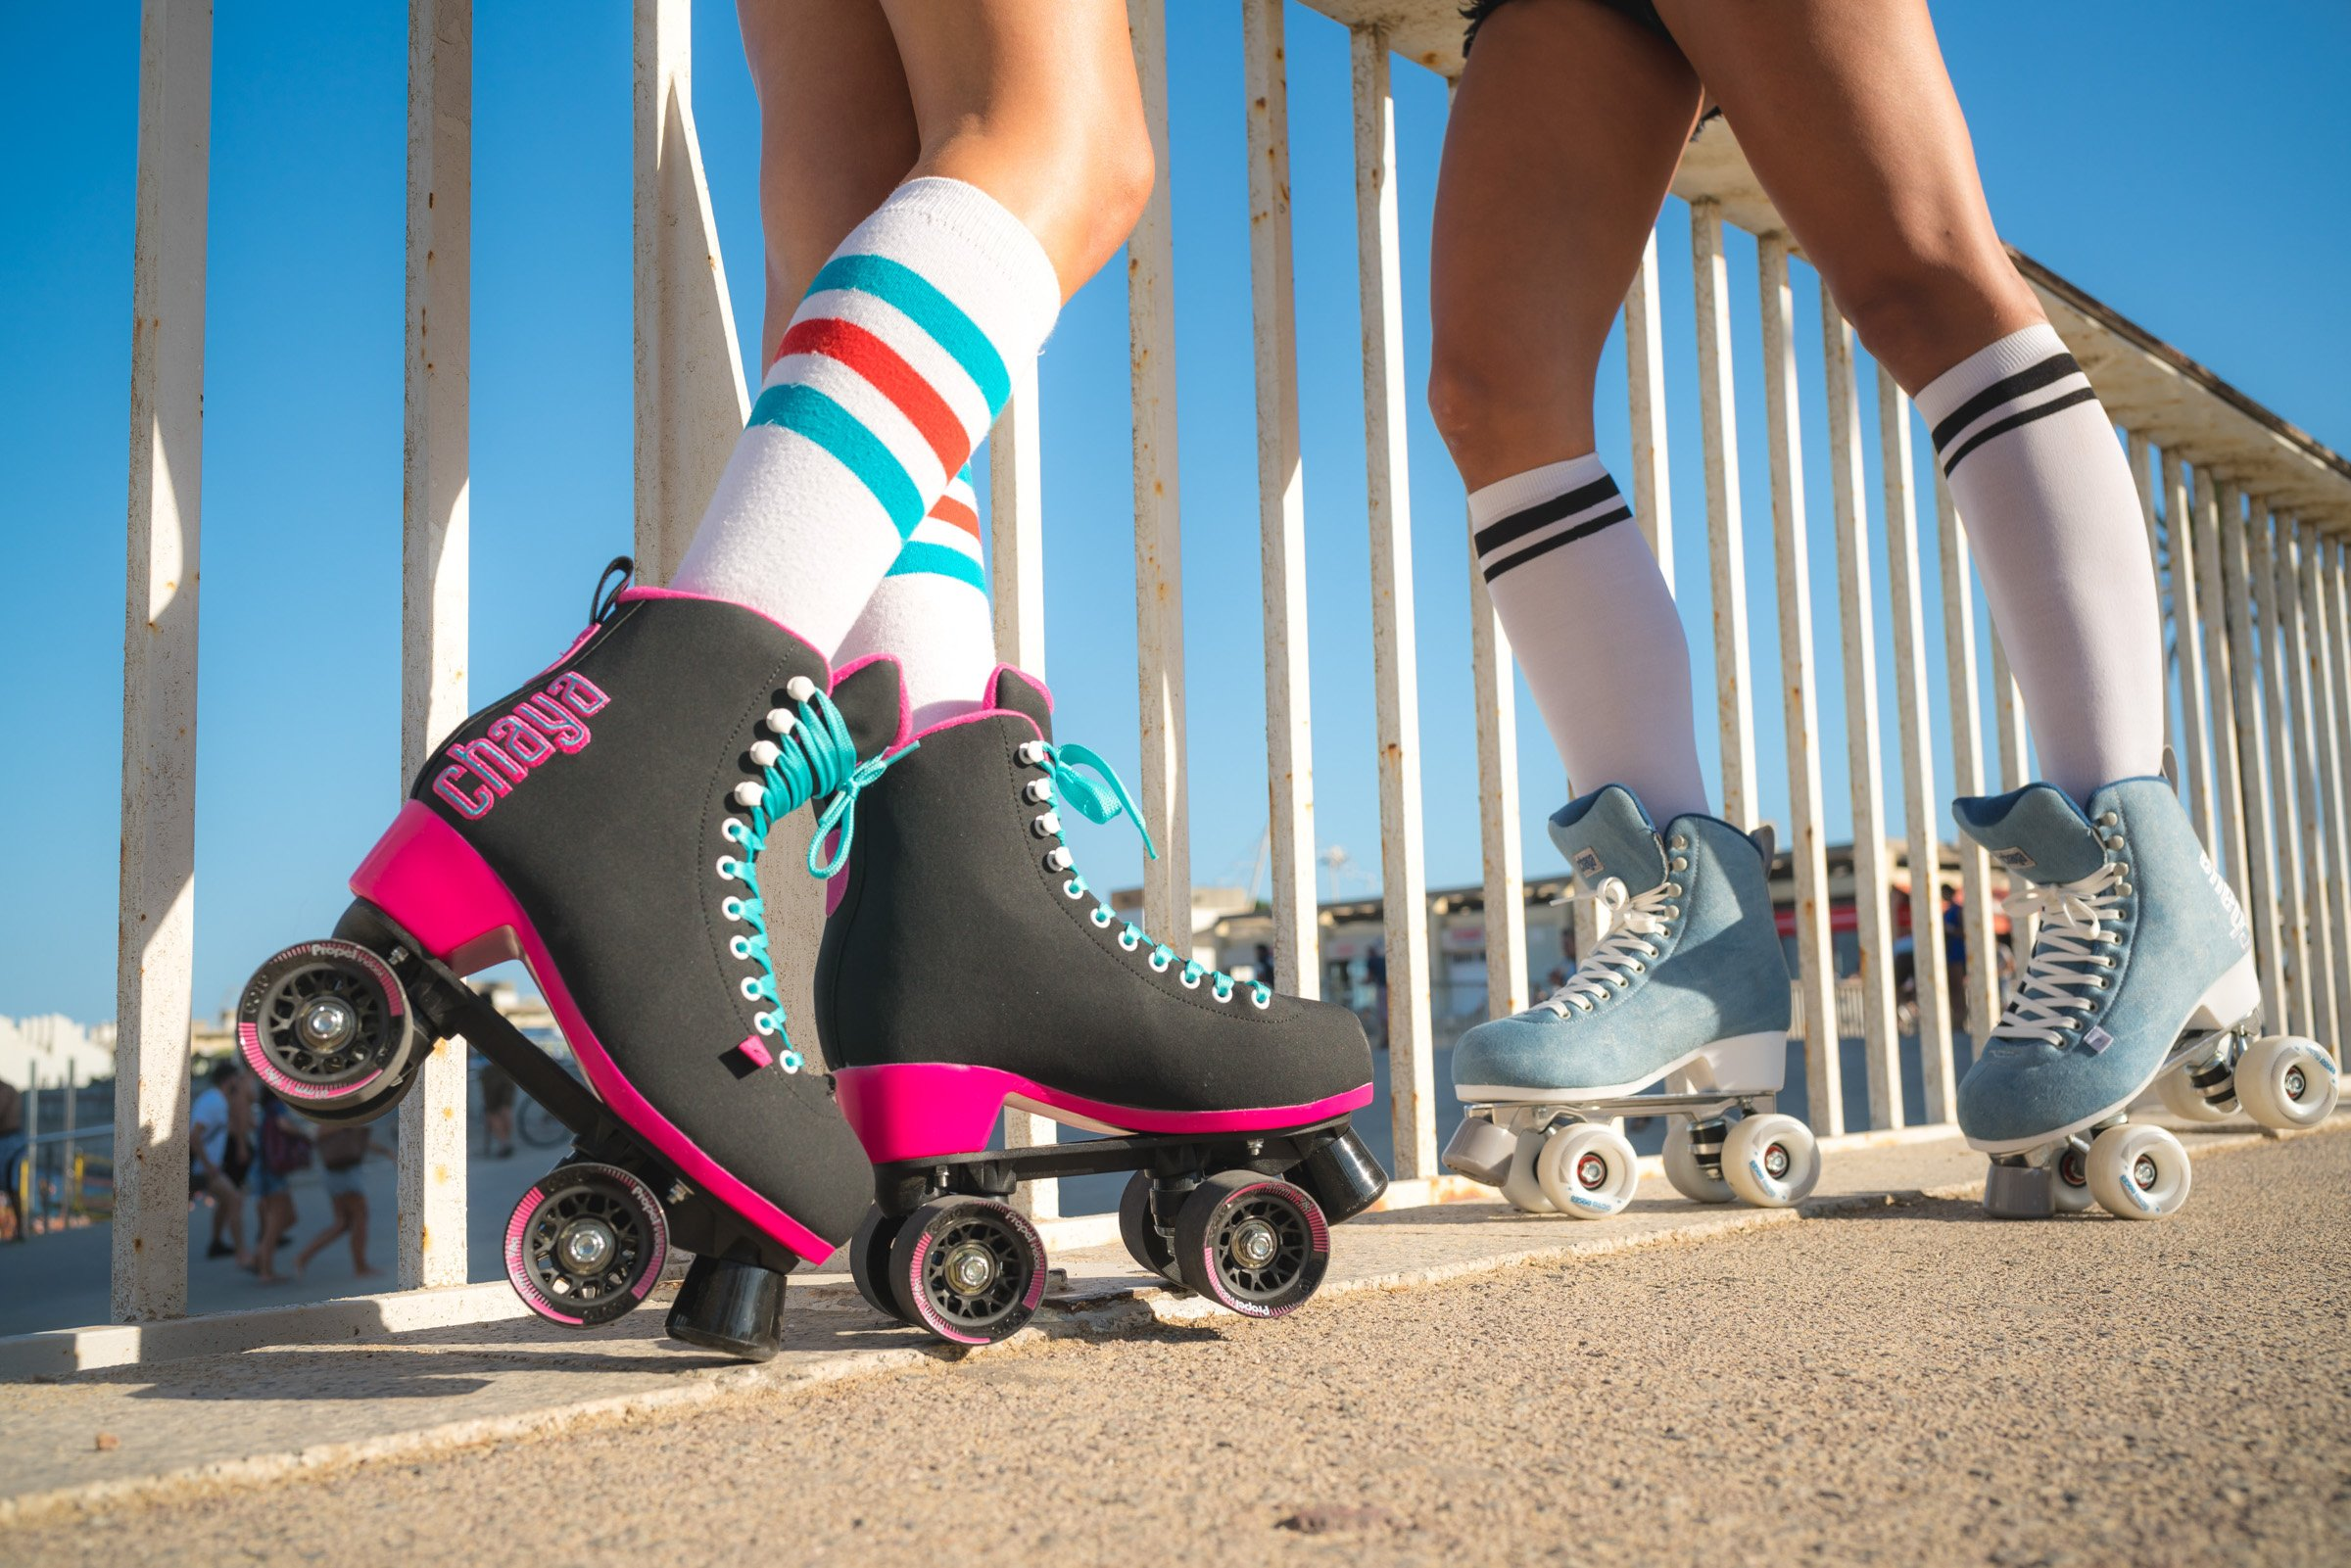 Chaya Melrose Black & Pink Quad Indoor/Outdoor Roller Skates (Euro 40 / US 9) by Chaya (Image #5)